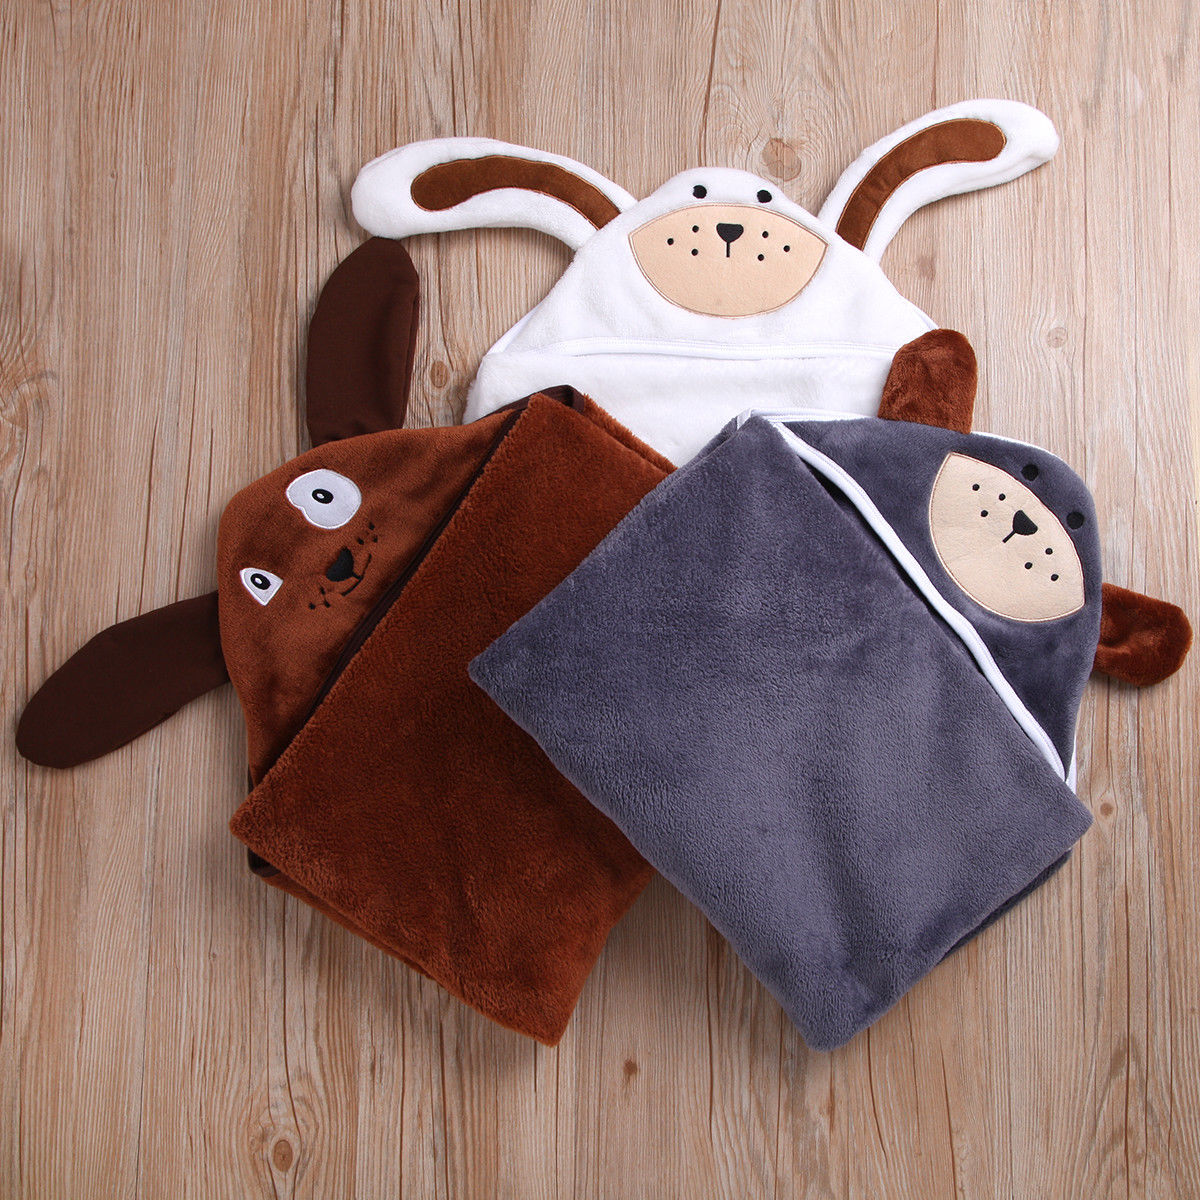 newborn-infant-baby-boys-girls-warm-hot-sale-hooded-animal-sleepwear-blanket-bathrobe-romper-clothes-3-colors